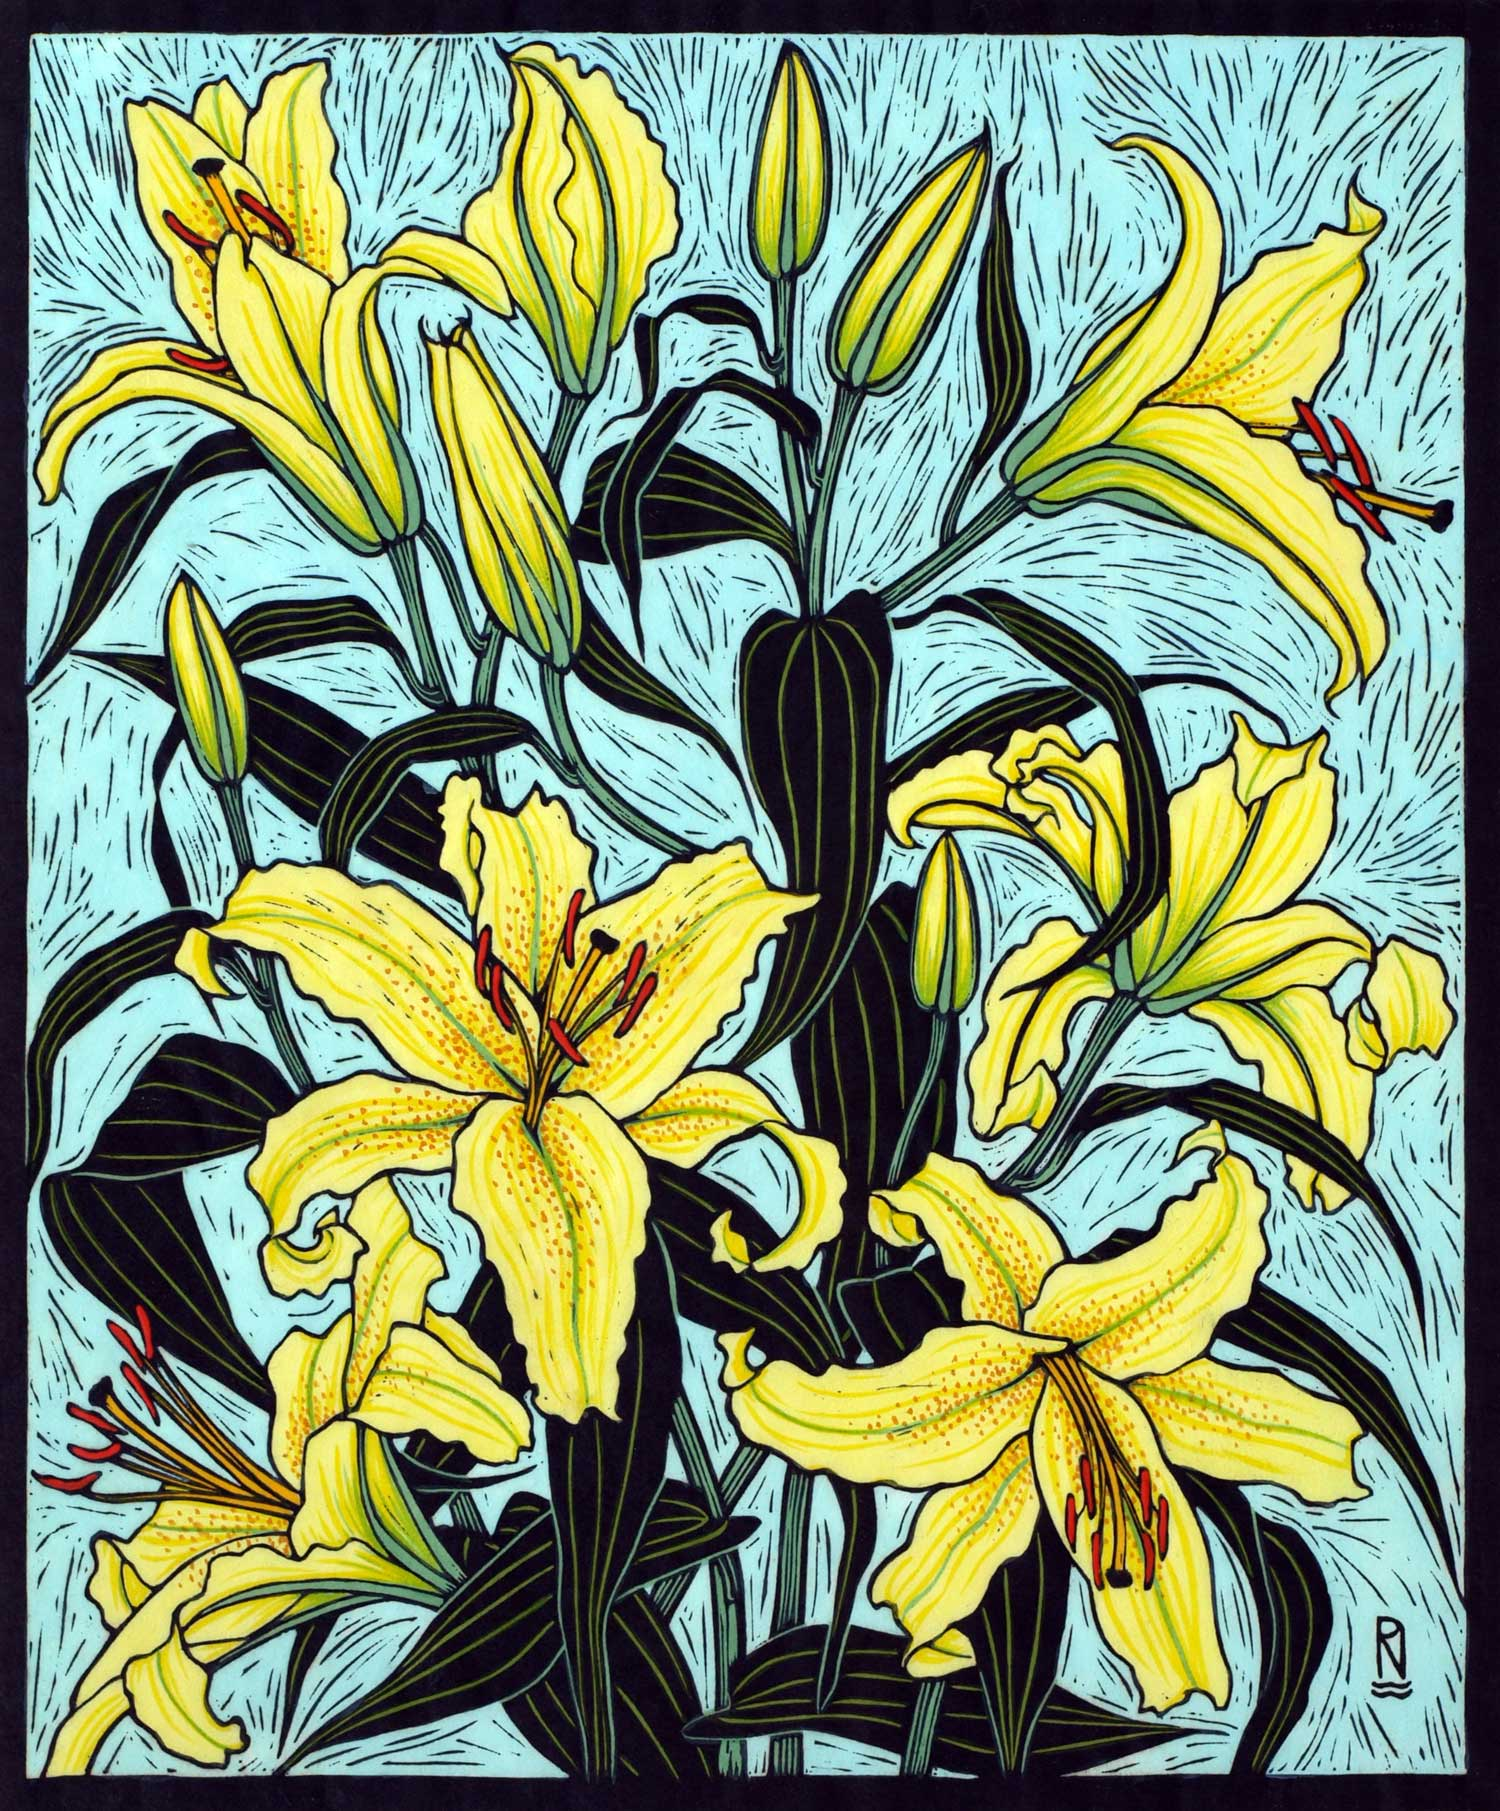 ORIENTAL LILY II  28 X 22 CM, EDITION OF 50  HAND-COLOURED LINOCUT ON HANDMADE JAPANESE PAPER  $1,100